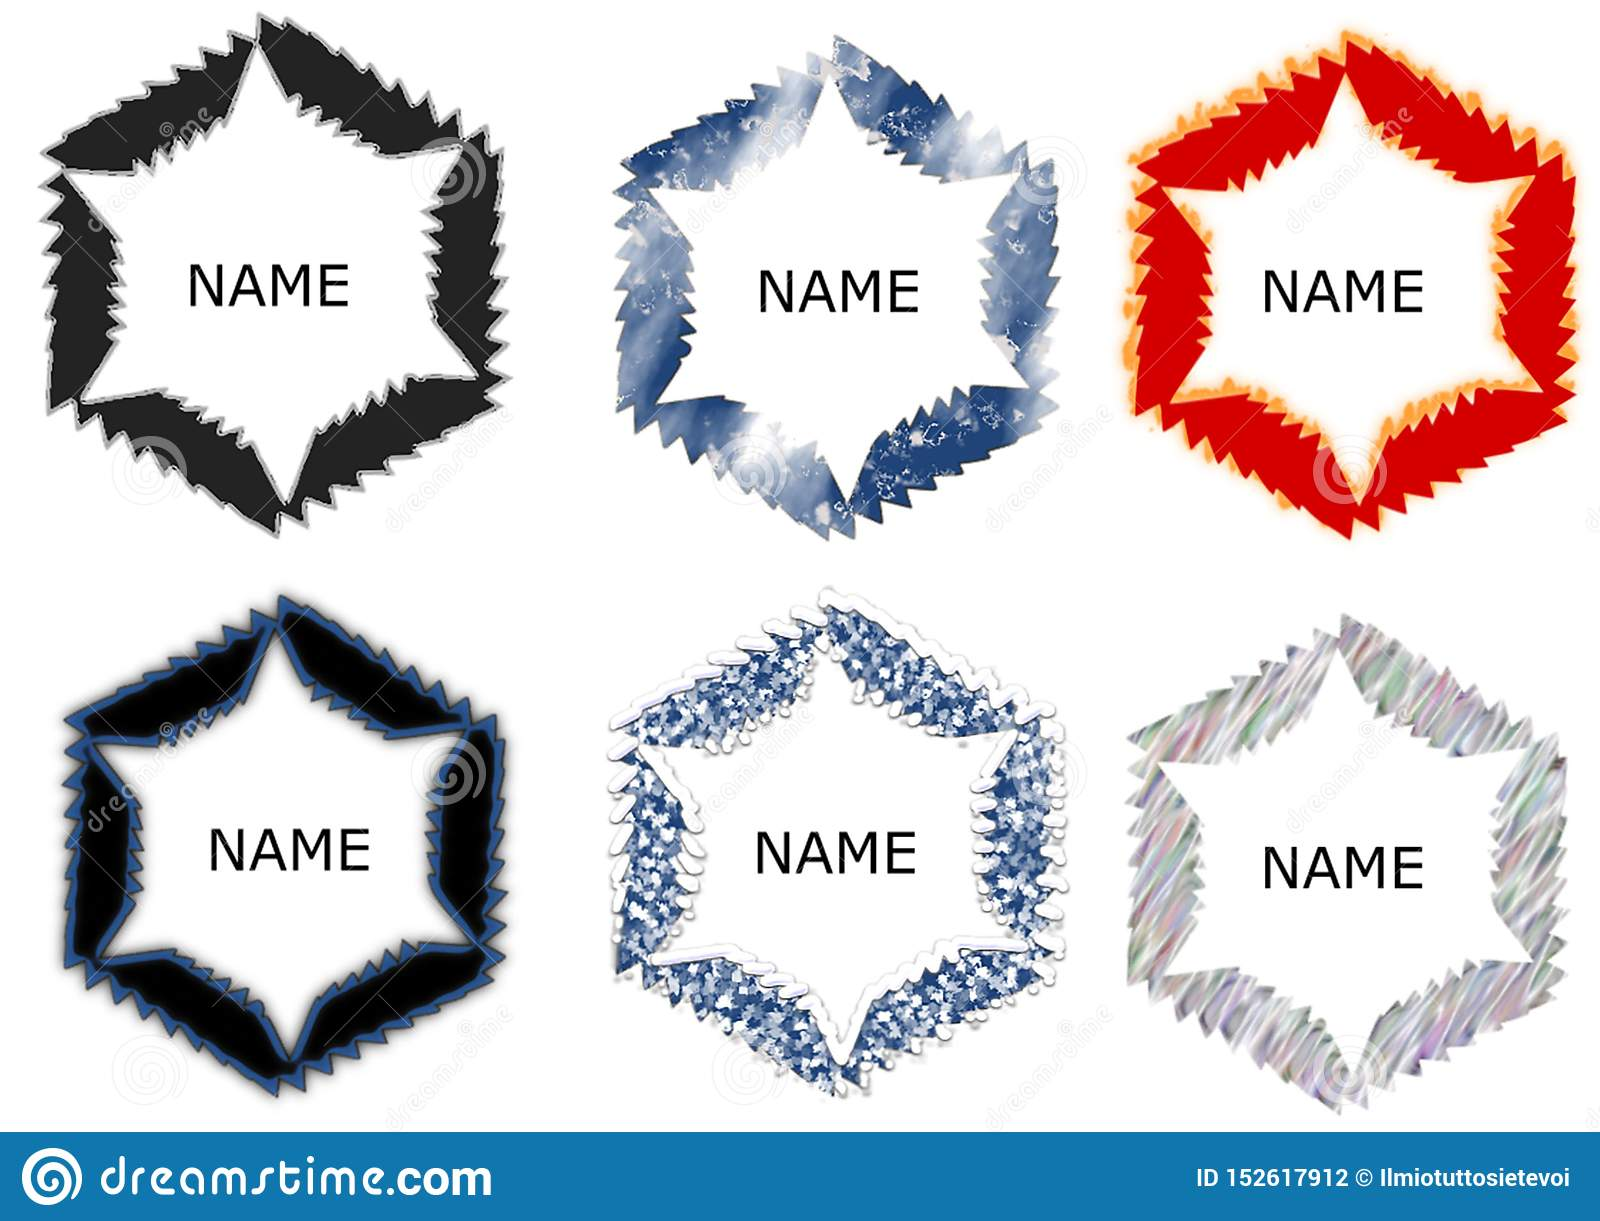 Abstract circle logo template with different patterns